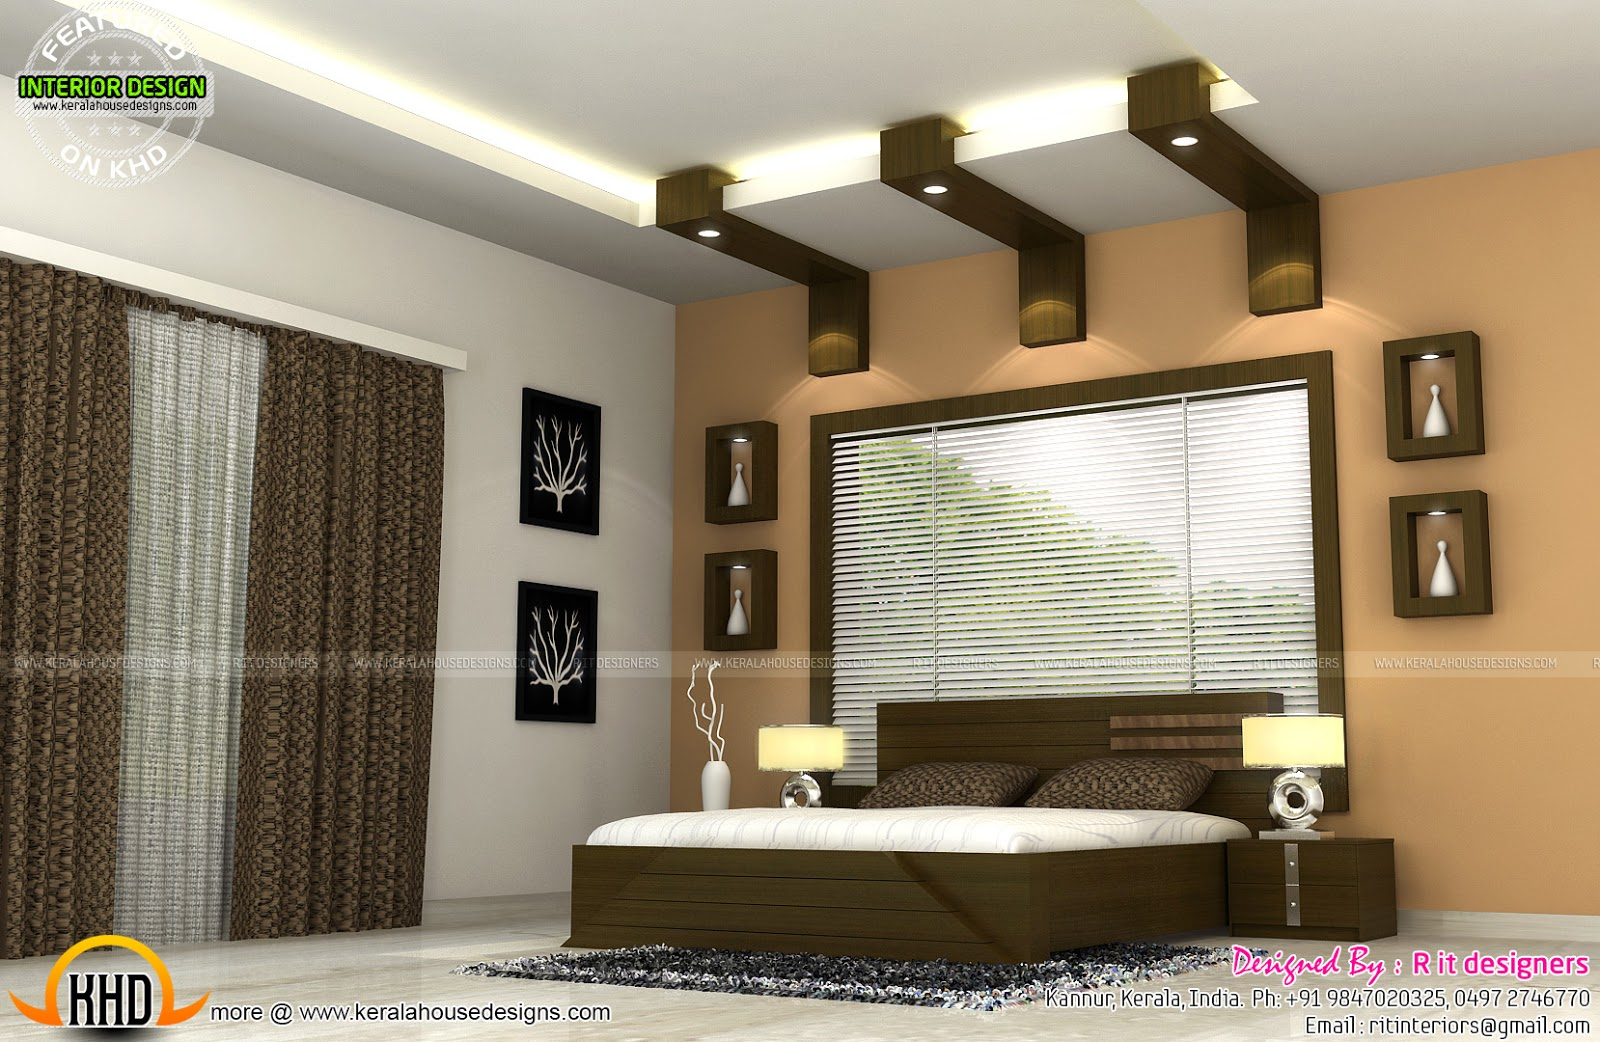 Interiors of bedrooms and kitchen kerala home design and floor plans - House interior designs ...